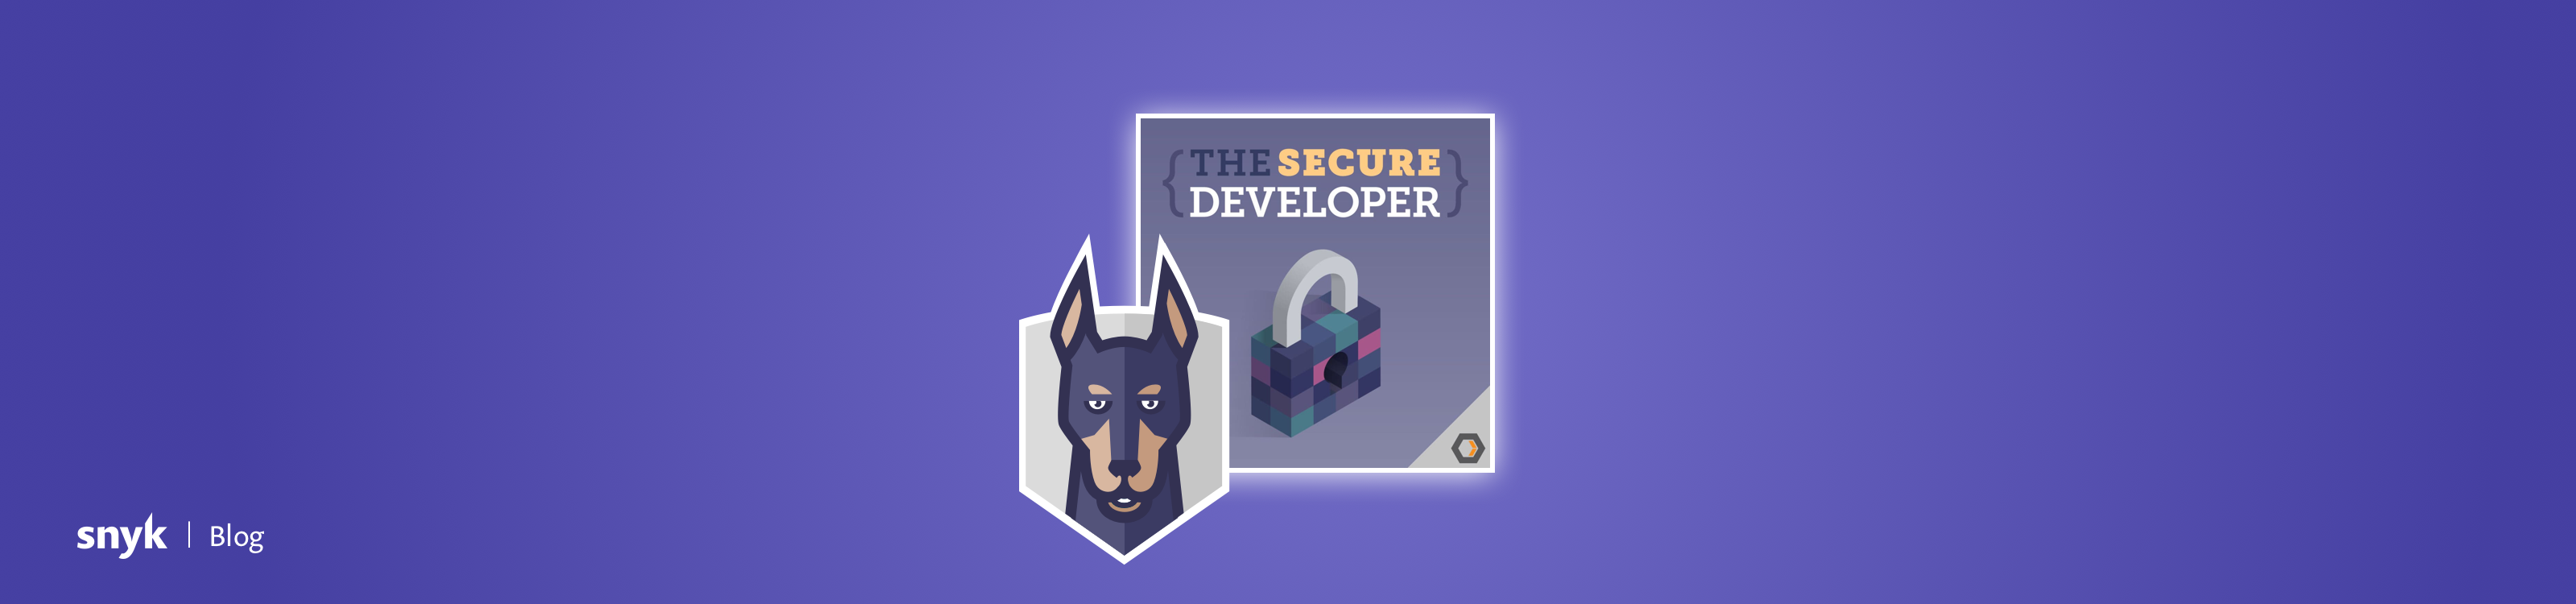 How to Educate, Train and Empower Developers in Security